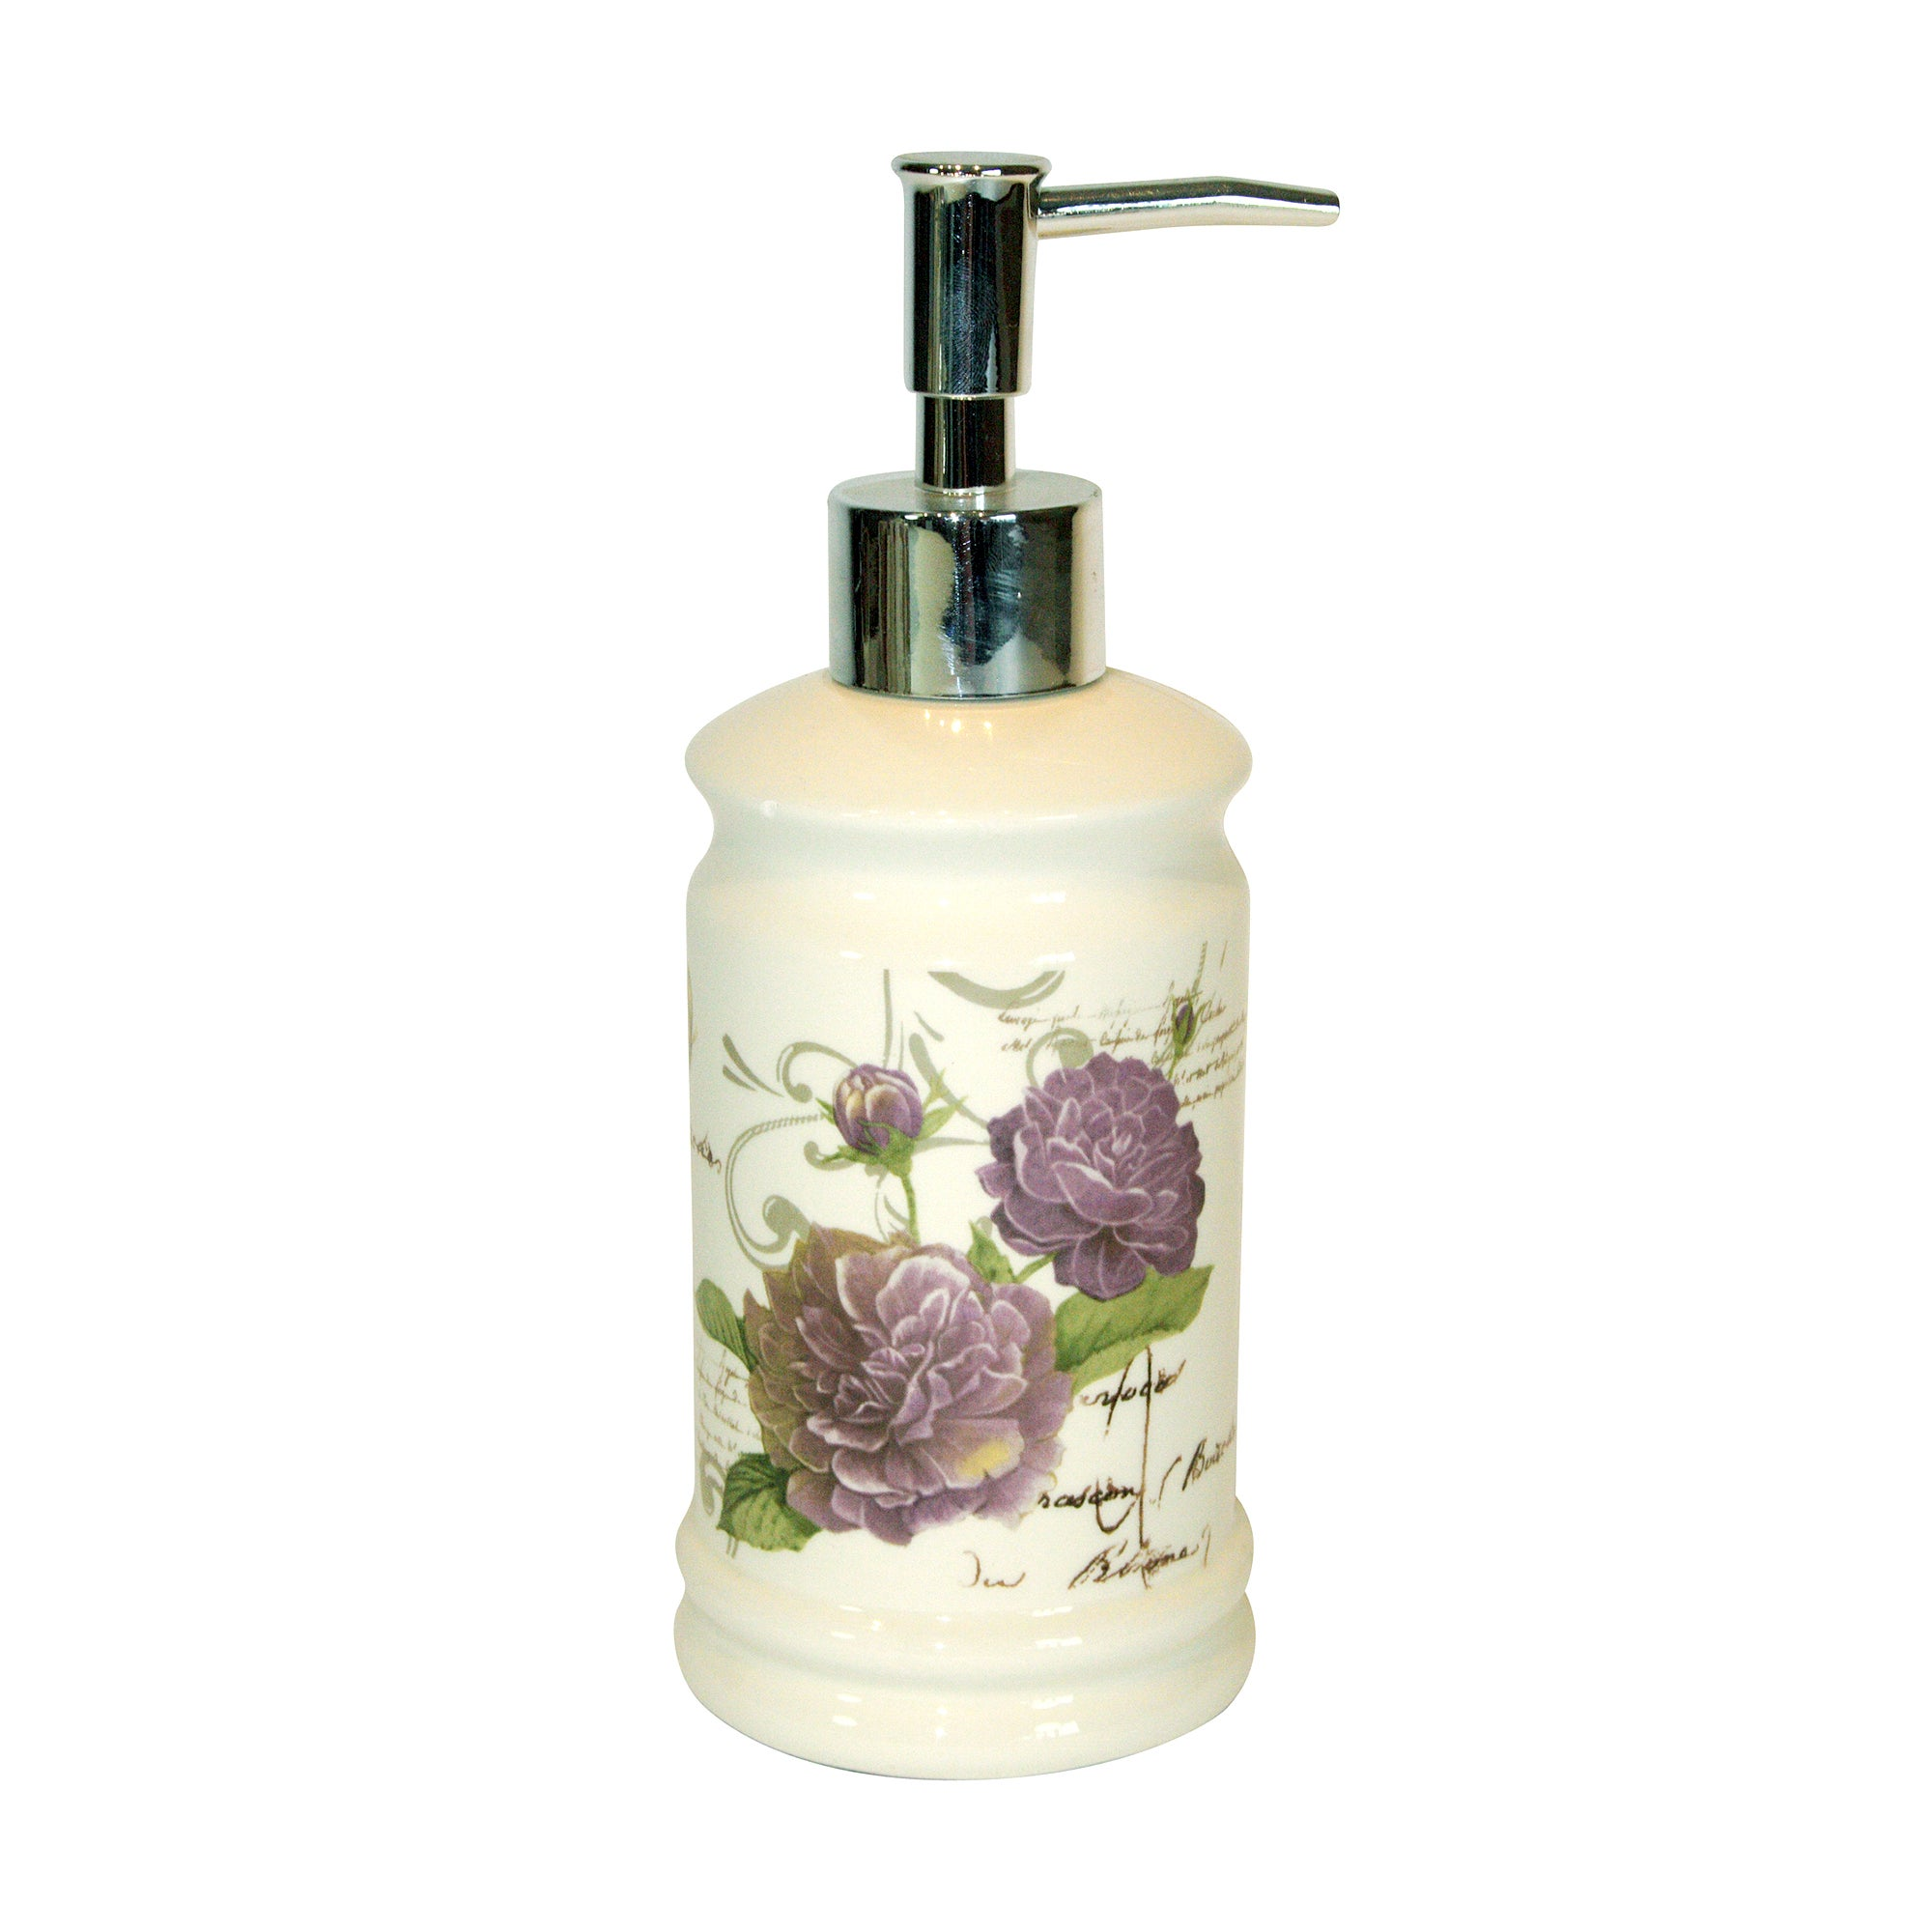 Grape Florence Collection Soap Dispenser